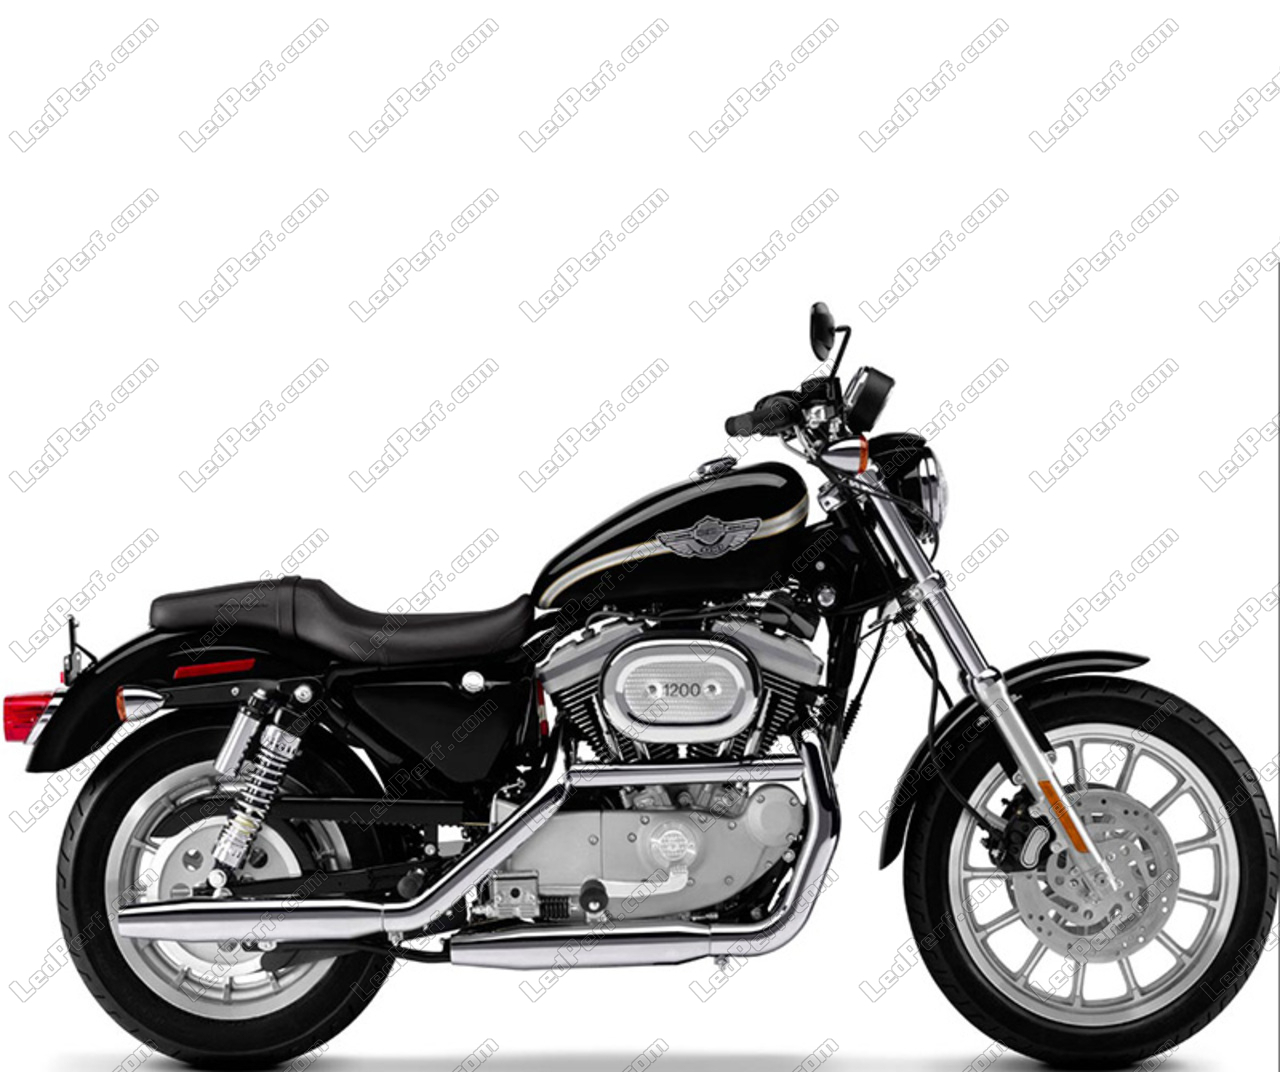 phare led rond pour harley davidson sport 1200 s garantie 5 ans. Black Bedroom Furniture Sets. Home Design Ideas